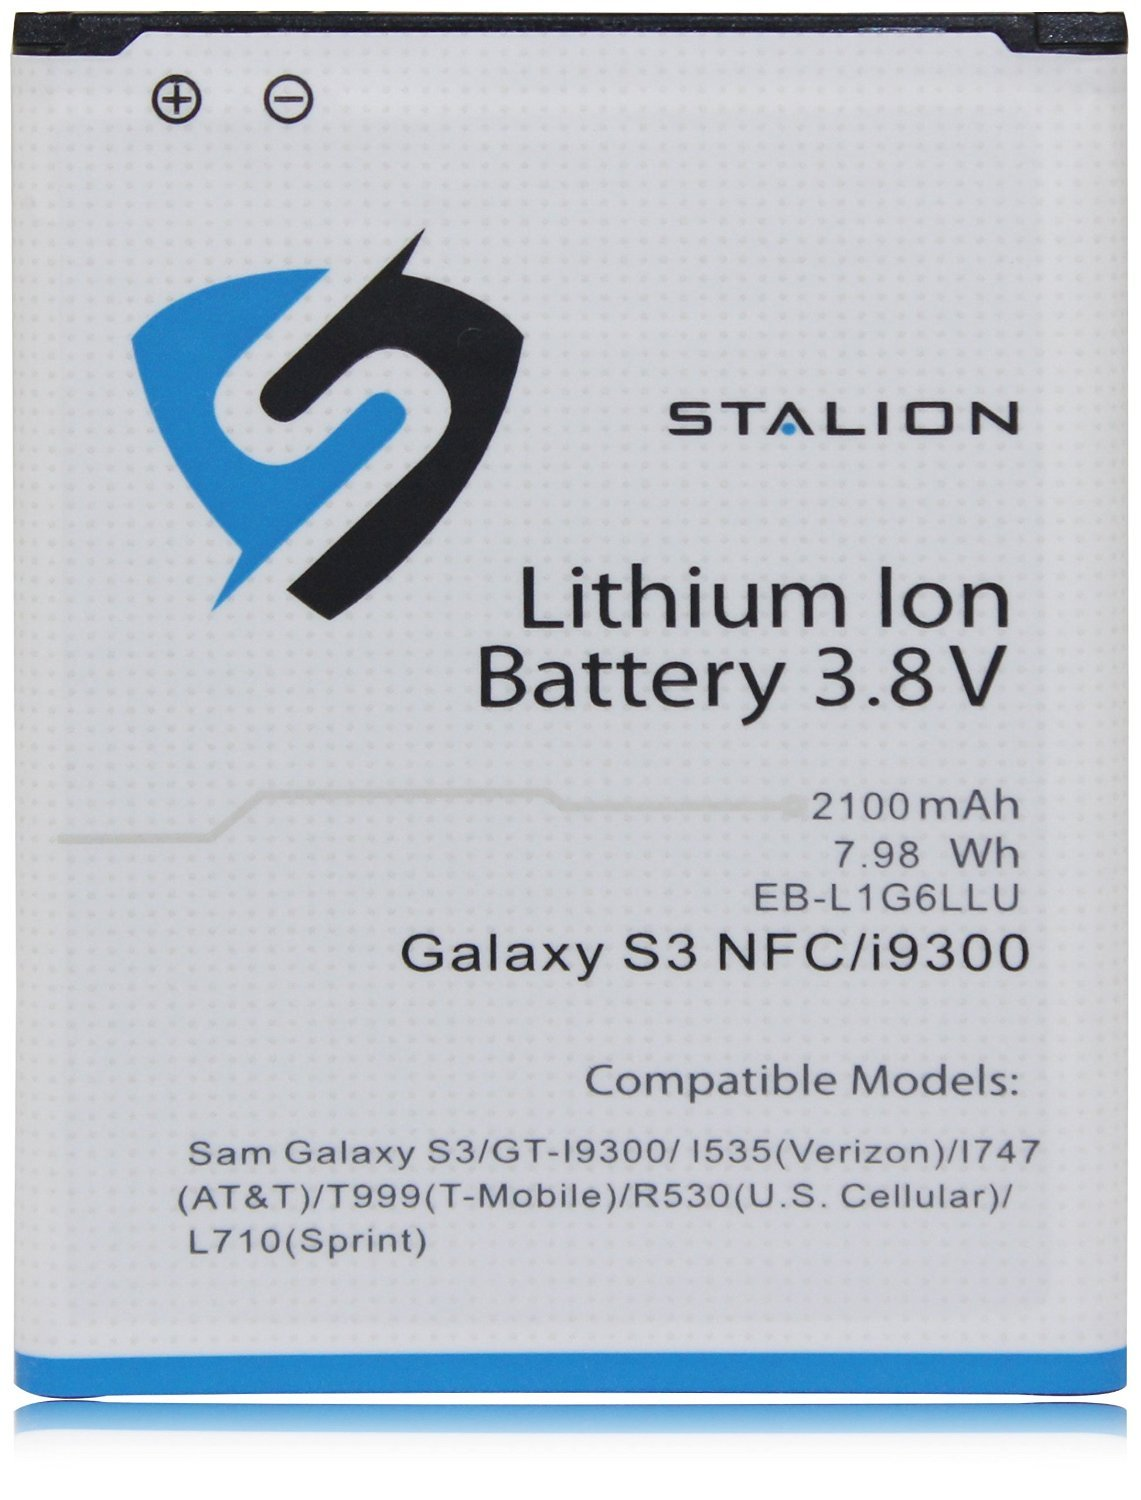 Samsung galaxy battery s3 verizon - Amazon Com Galaxy S3 Battery Stalion Strength Replacement 2100mah Li Ion Battery For Samsung Galaxy S3 Siii 24 Month Warranty With Nfc Chip Google